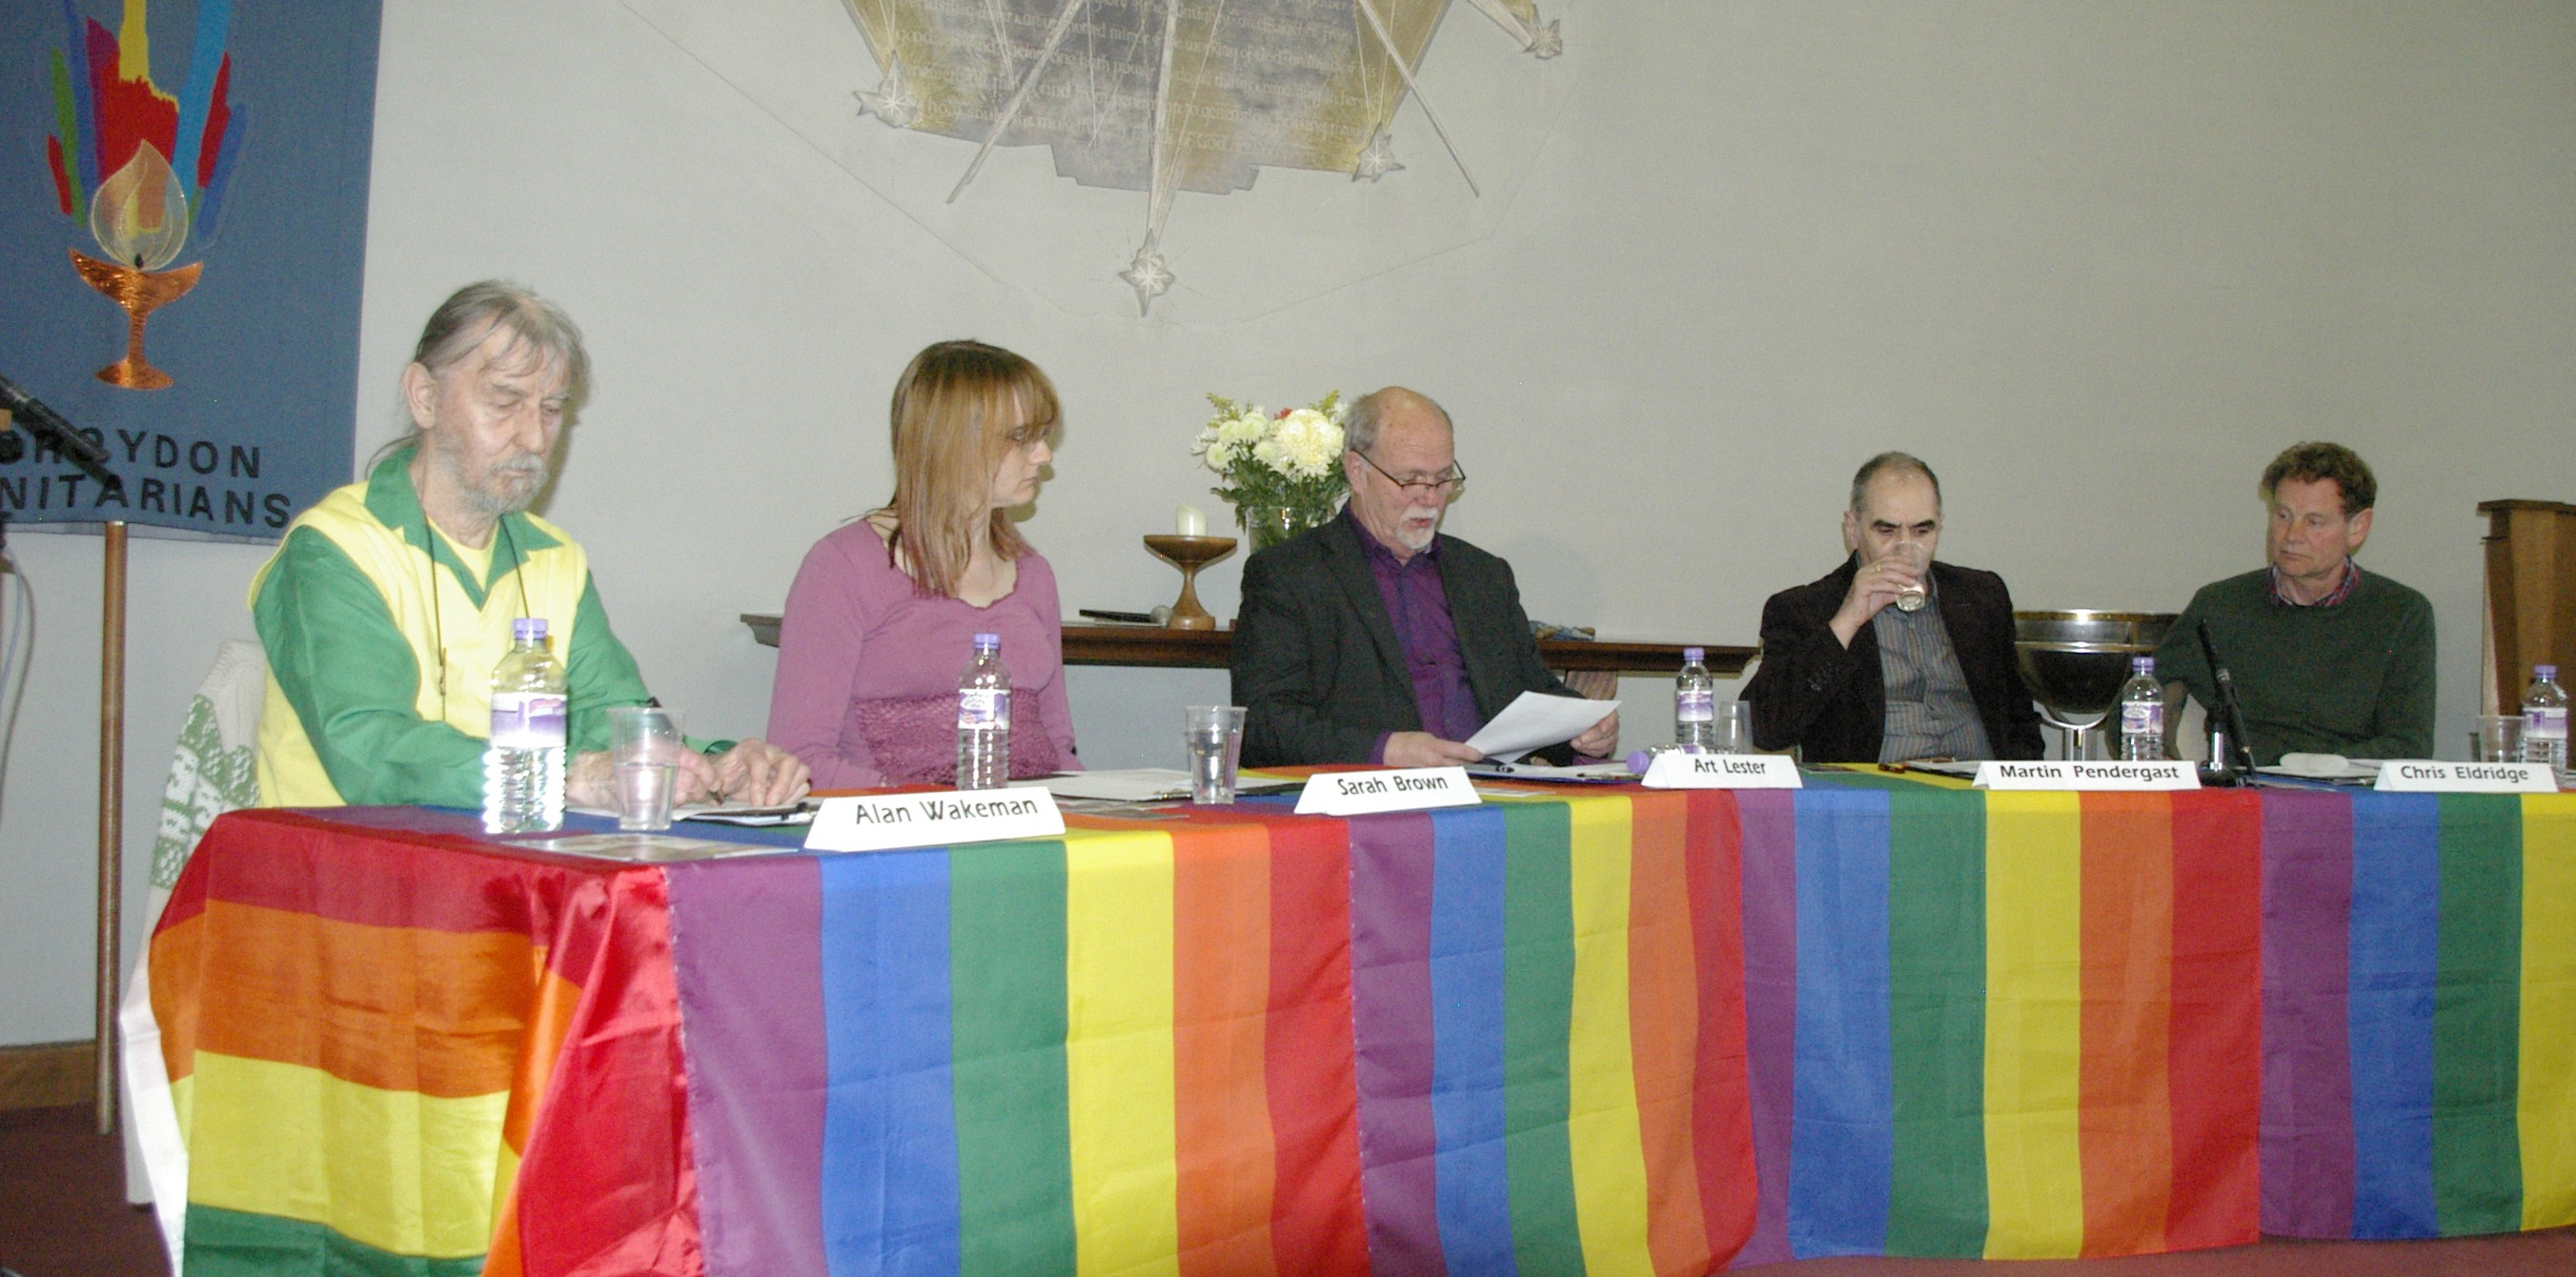 The panel for the debate. Left to right: Alan Wakeman, Sarah Brown, Rev Art Lester, Martin Pendergast, Chris Eldridge